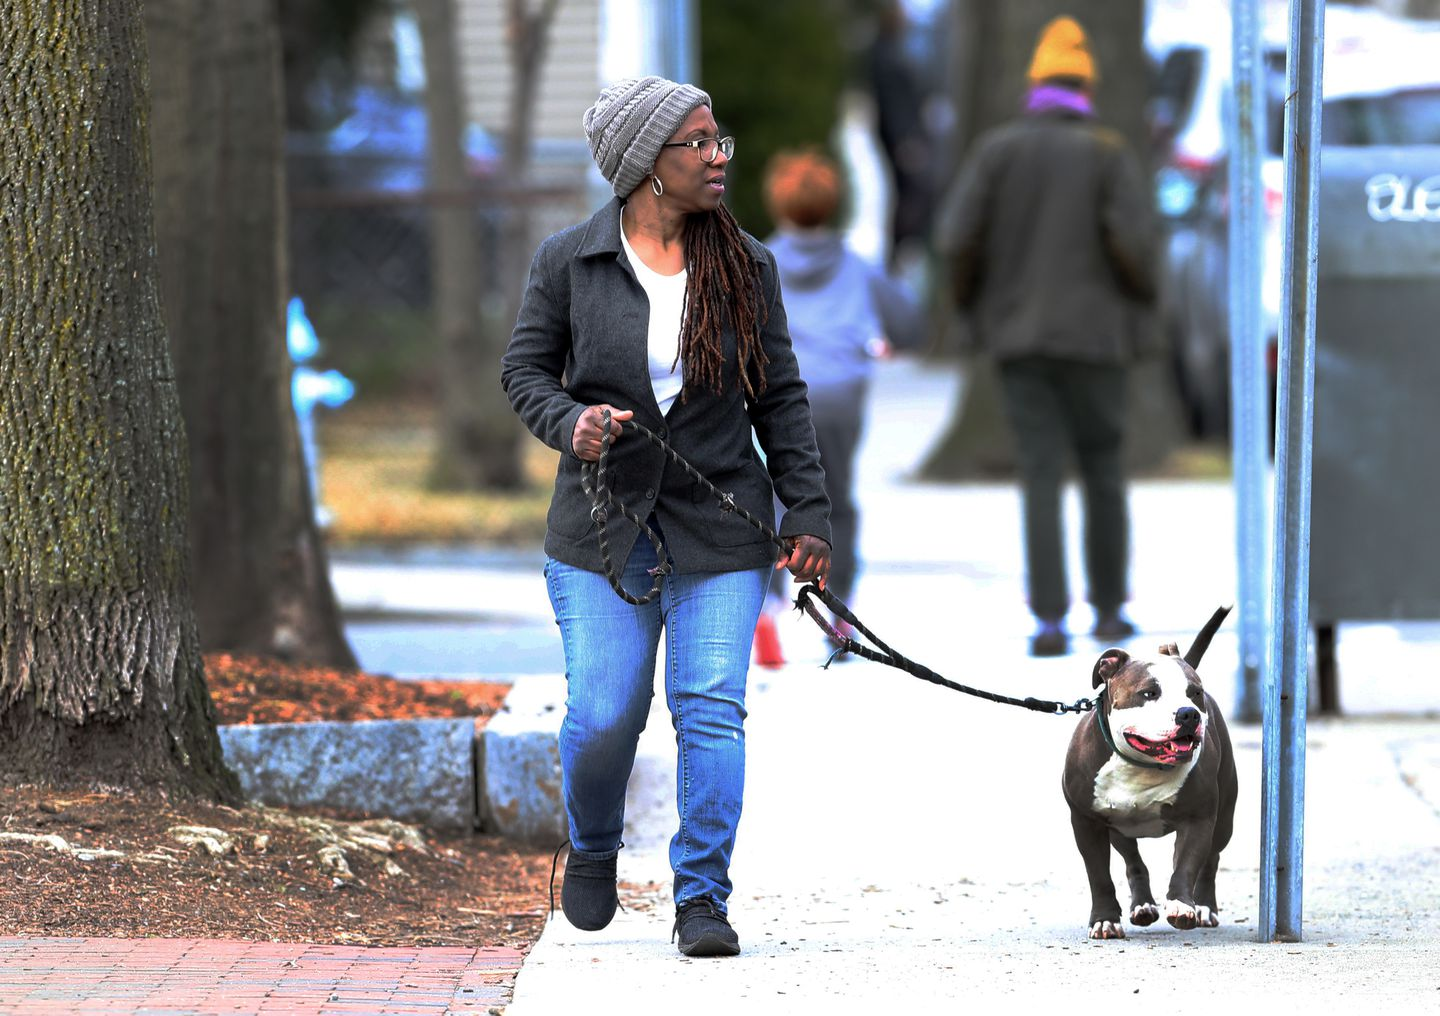 Cynthia Haynes, of Cambridge, looks for social distancing scofflaws while out on walks with her dog. She has posted comments on social media and filed complaints with police about people who aren't following health guidelines. Haynes worries about the well-being of residents most vulnerable to the virus, including her mother, who's in her 80s.